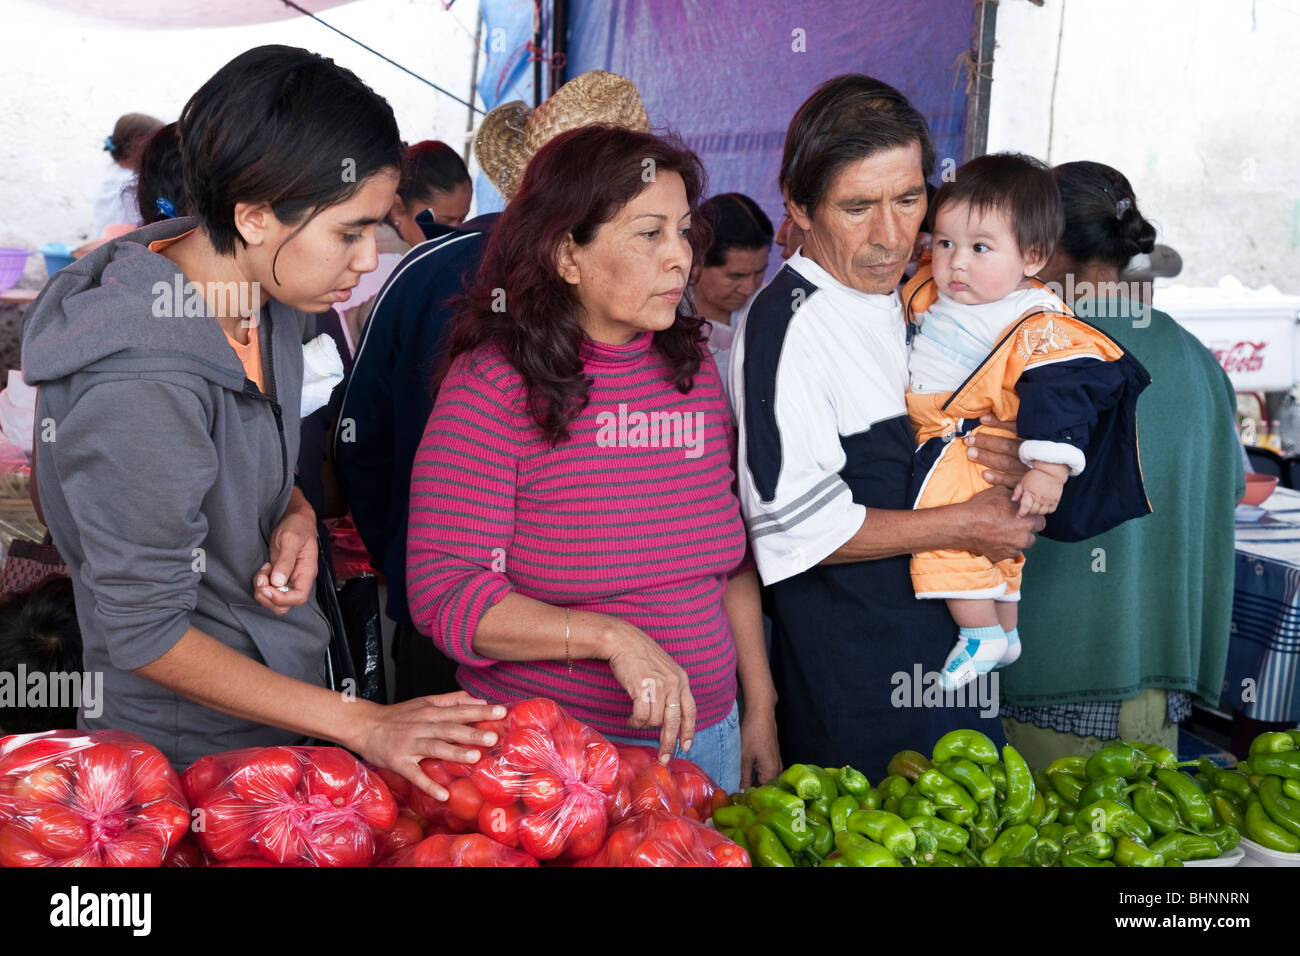 handsome Mexican family with chubby baby boy & pretty teen daughter consider vegetable purchase at Ocotlan Market - Stock Image